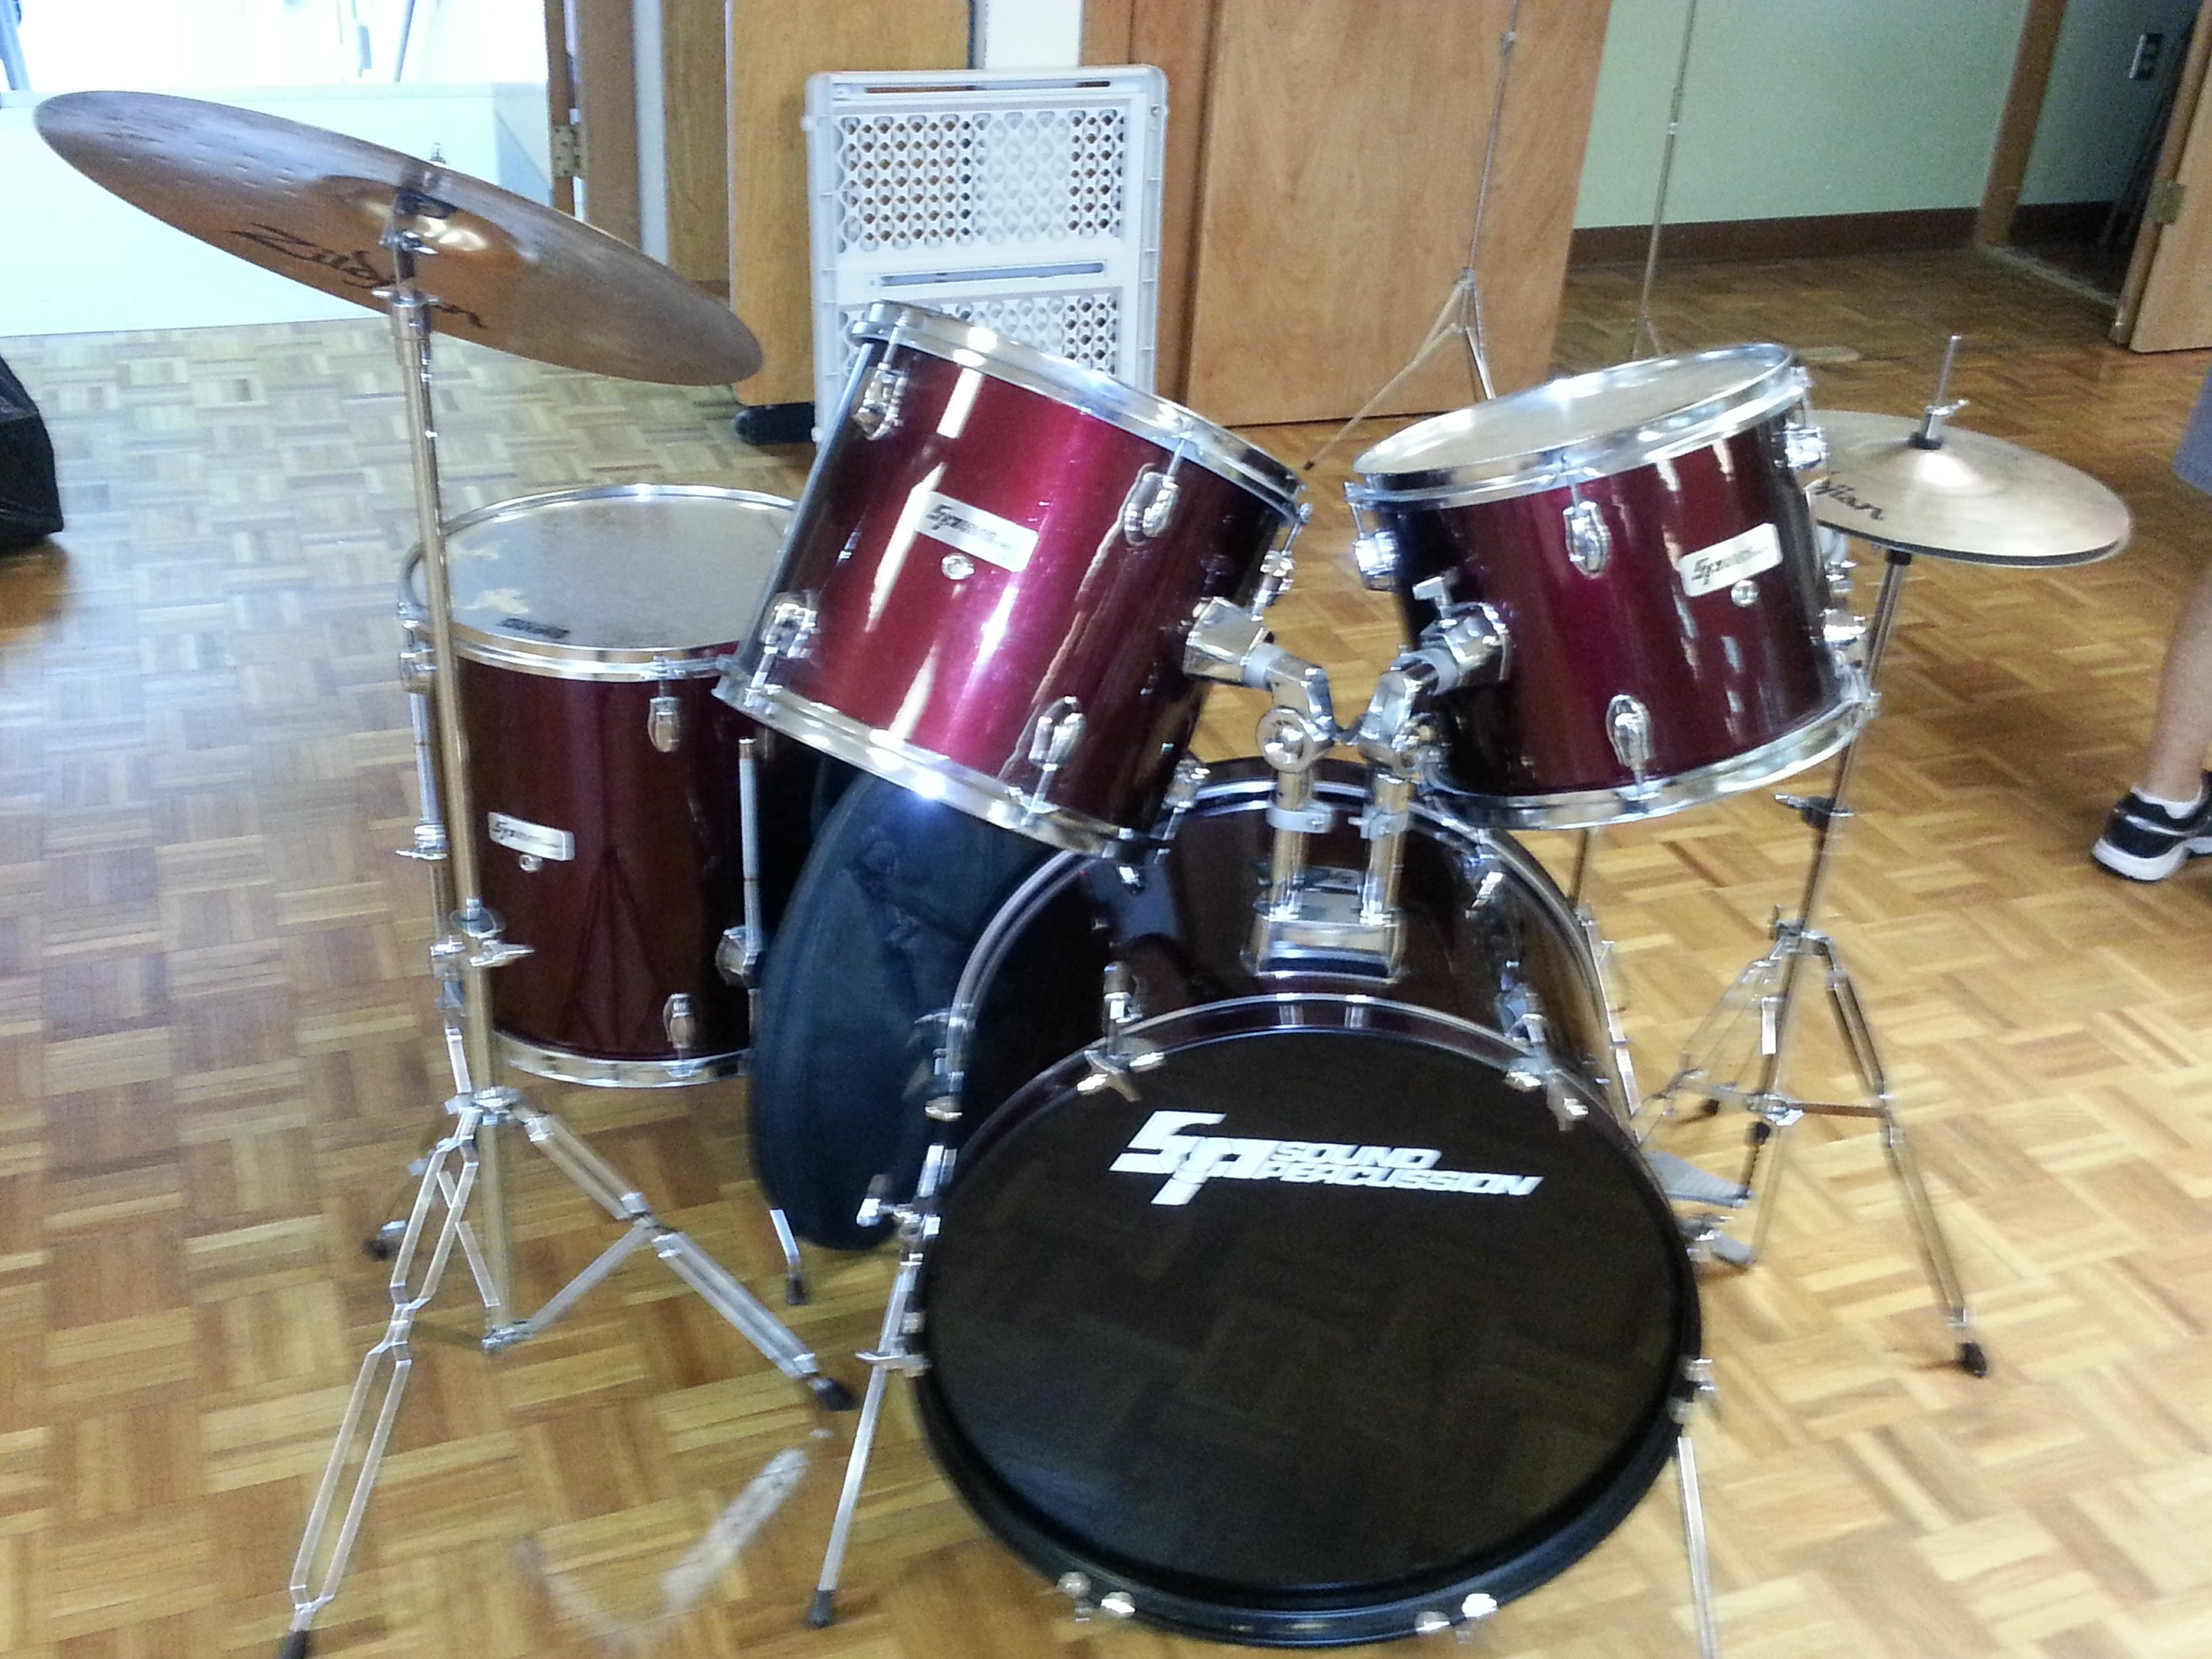 drum set for sale today yard sale 500 annual church ladies yard sale extravaganza. Black Bedroom Furniture Sets. Home Design Ideas